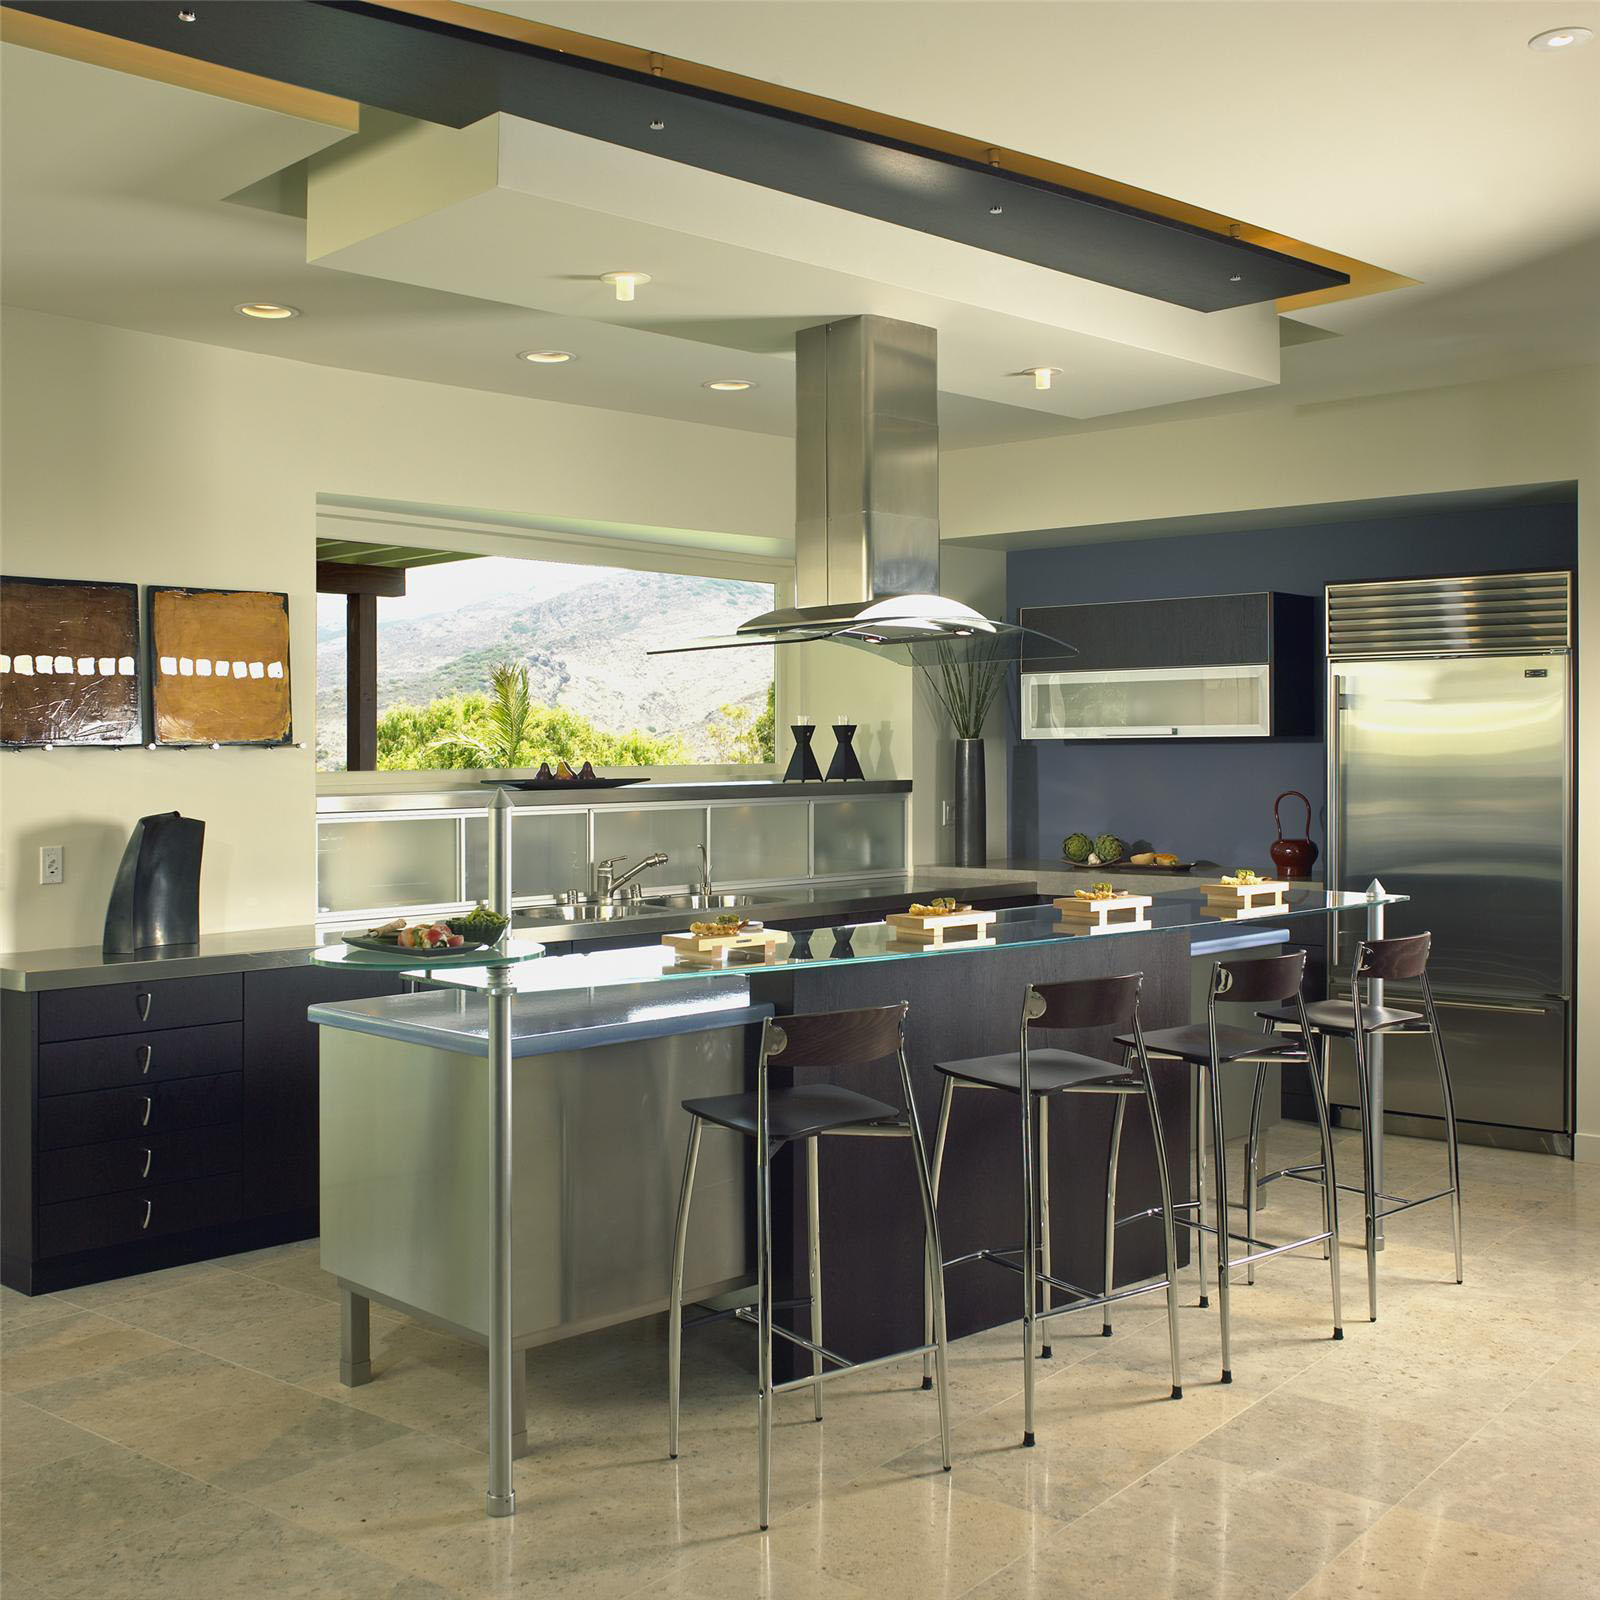 Designs Kitchen: Open Contemporary Kitchen Design Ideas